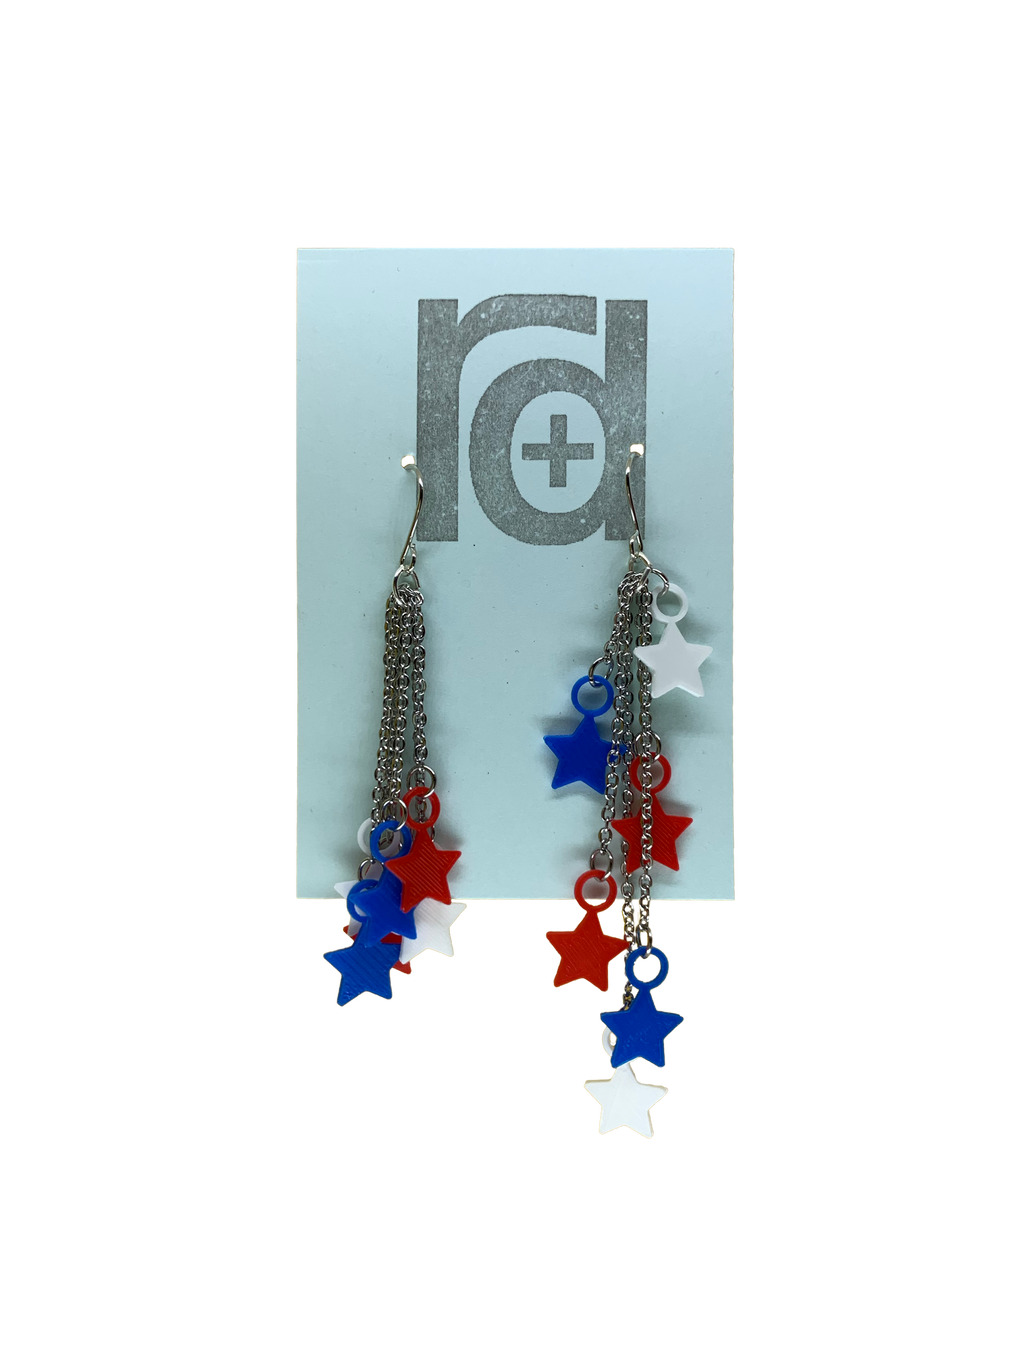 On a light blue earring card are two earrings. They have red, white, and blue stars that hang at the end of chains. The stars can be pulled to hang all at one length (shown on the left earring) or at various lengths (shown on the right earring).